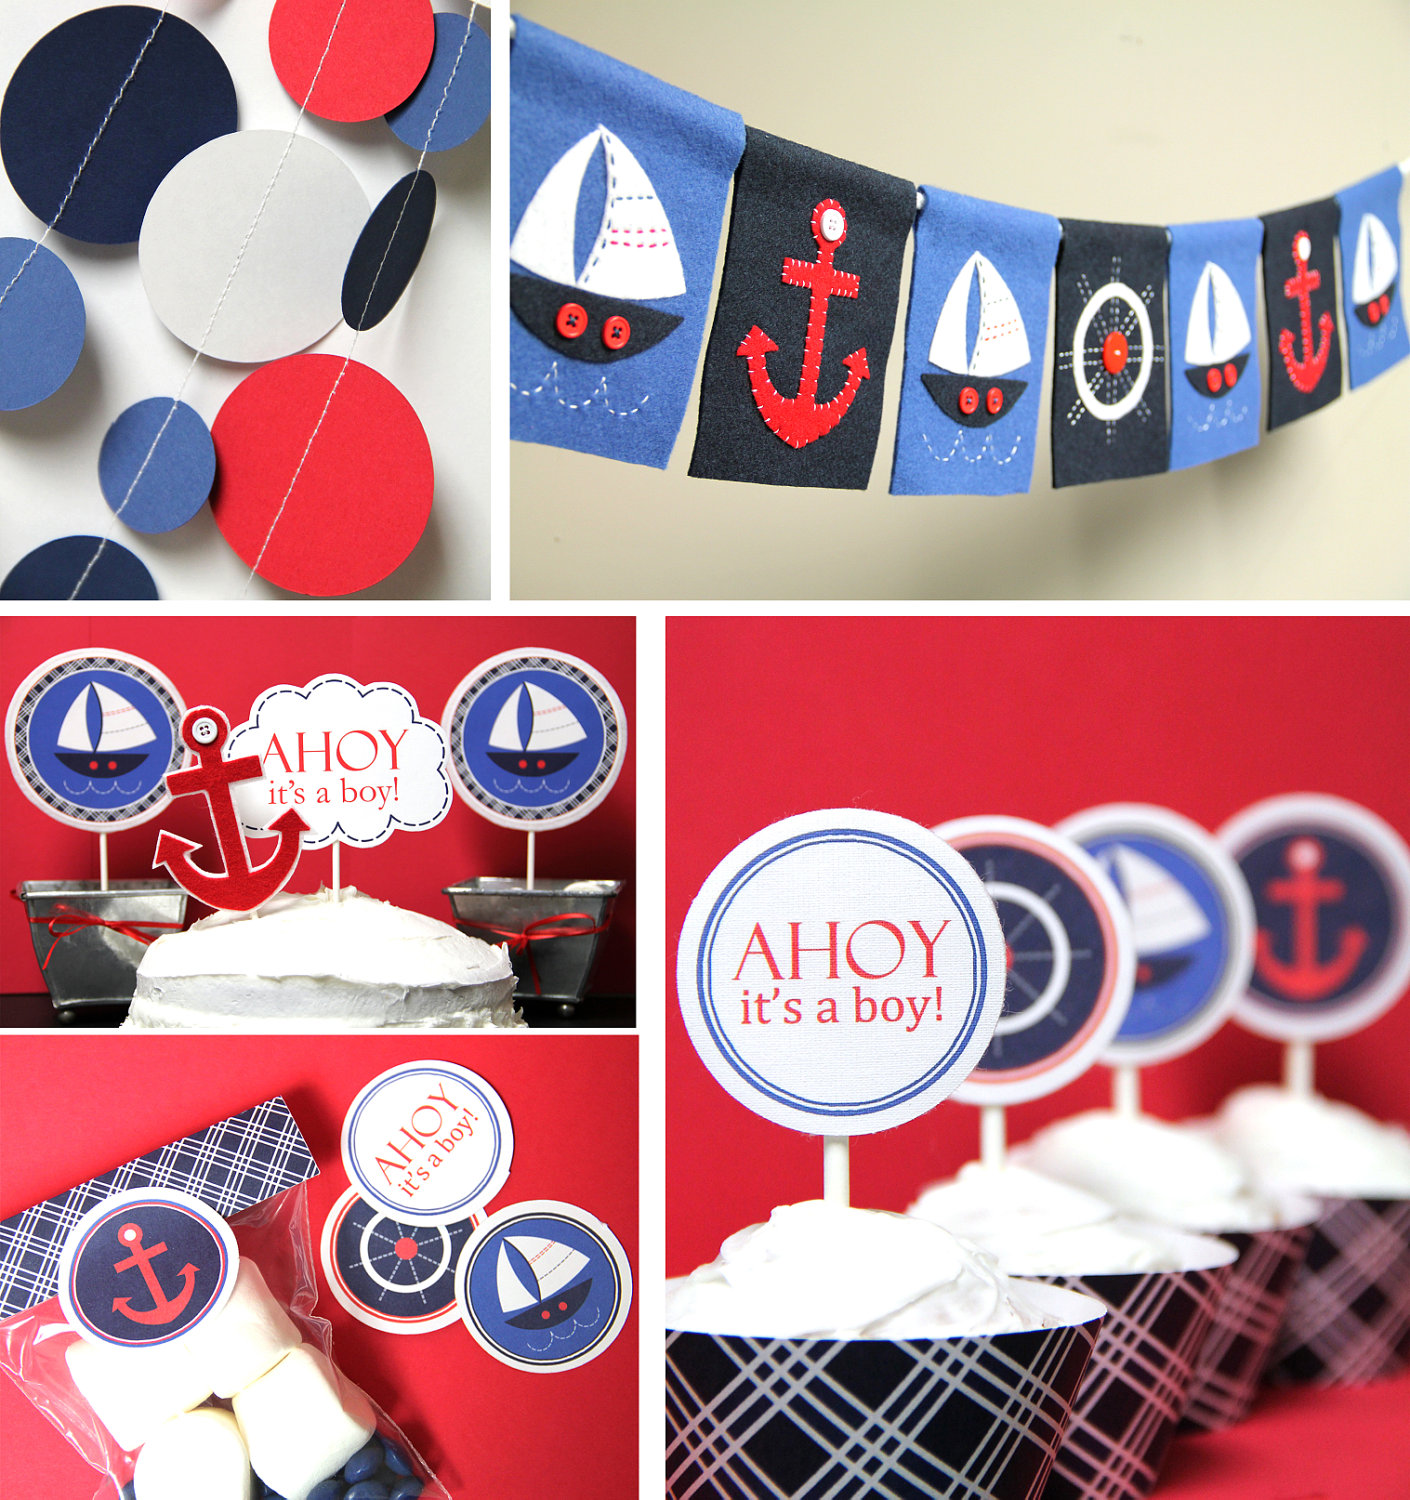 Lovely Nautical Boys Party Is For A Baby Shower From Taffie Wishes. Doo ...